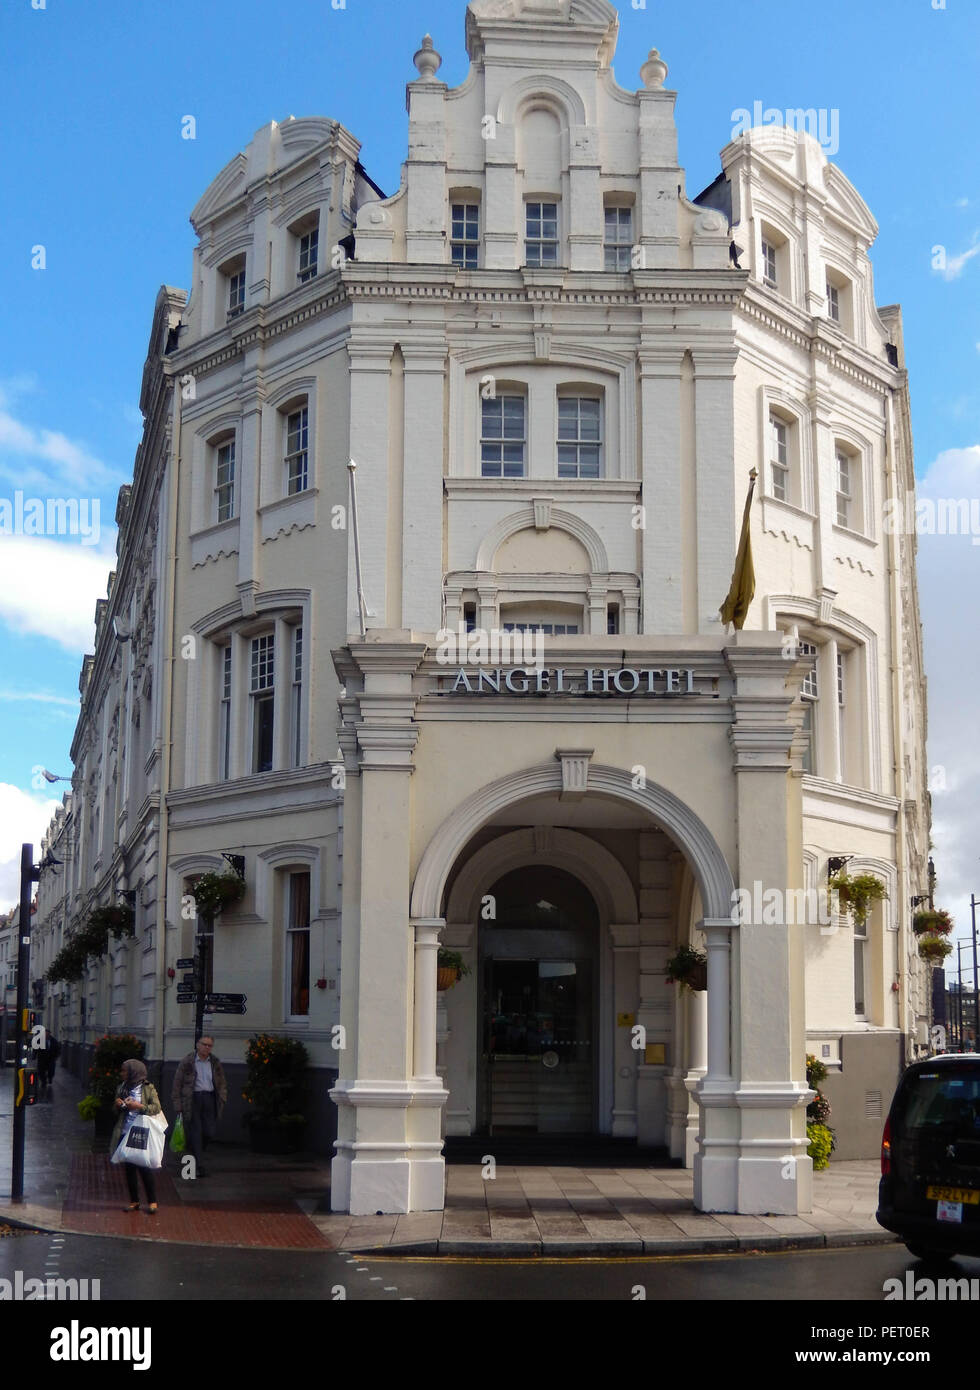 Exterior view of The Angel Hotel, a long established hotel in Cardiff city centre. - Stock Image